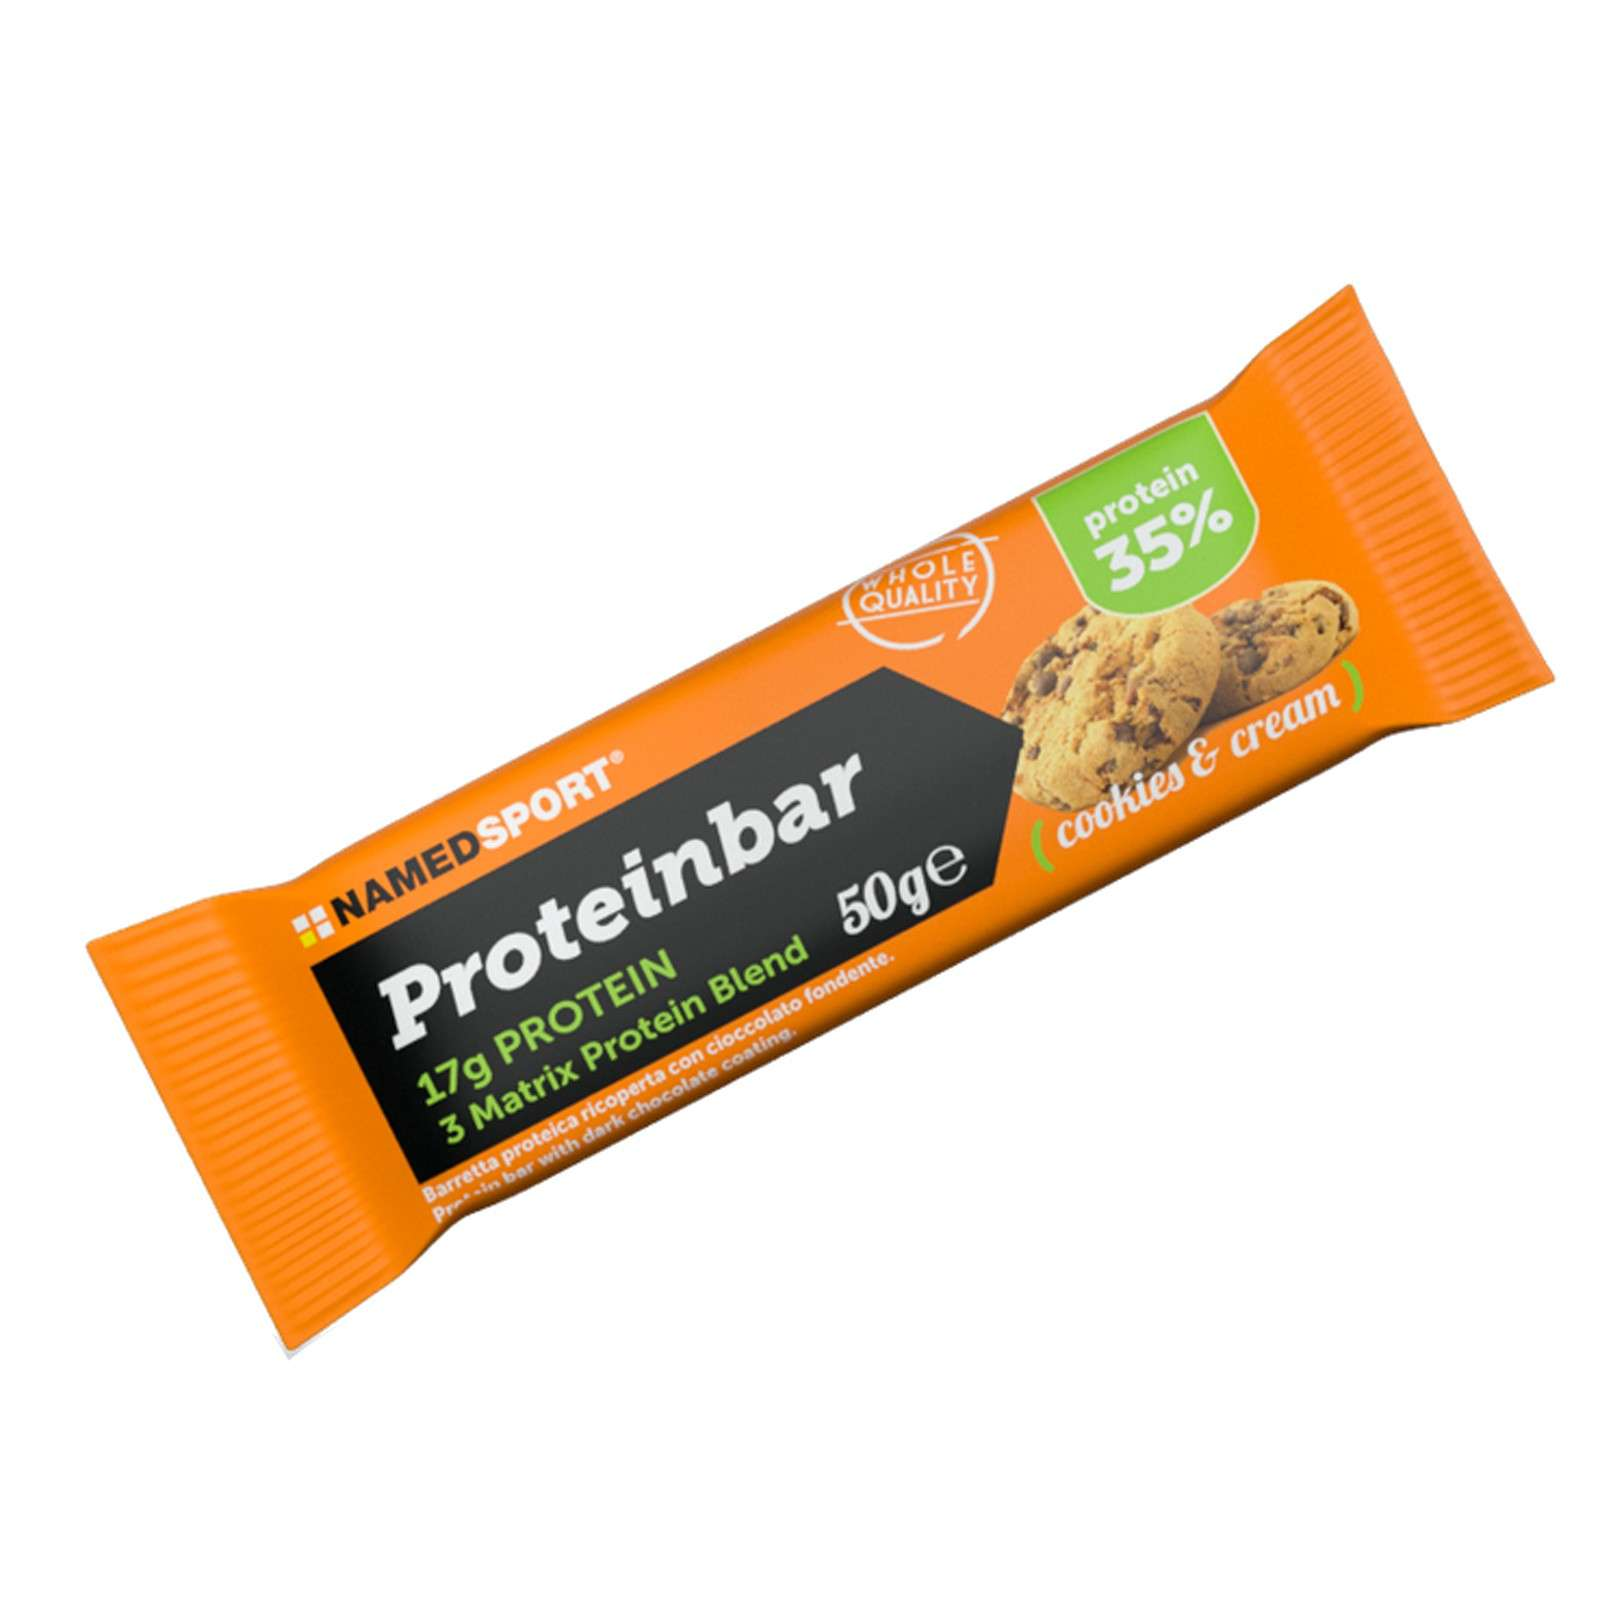 Named Sport - Protein Bar - Cookies and Cream